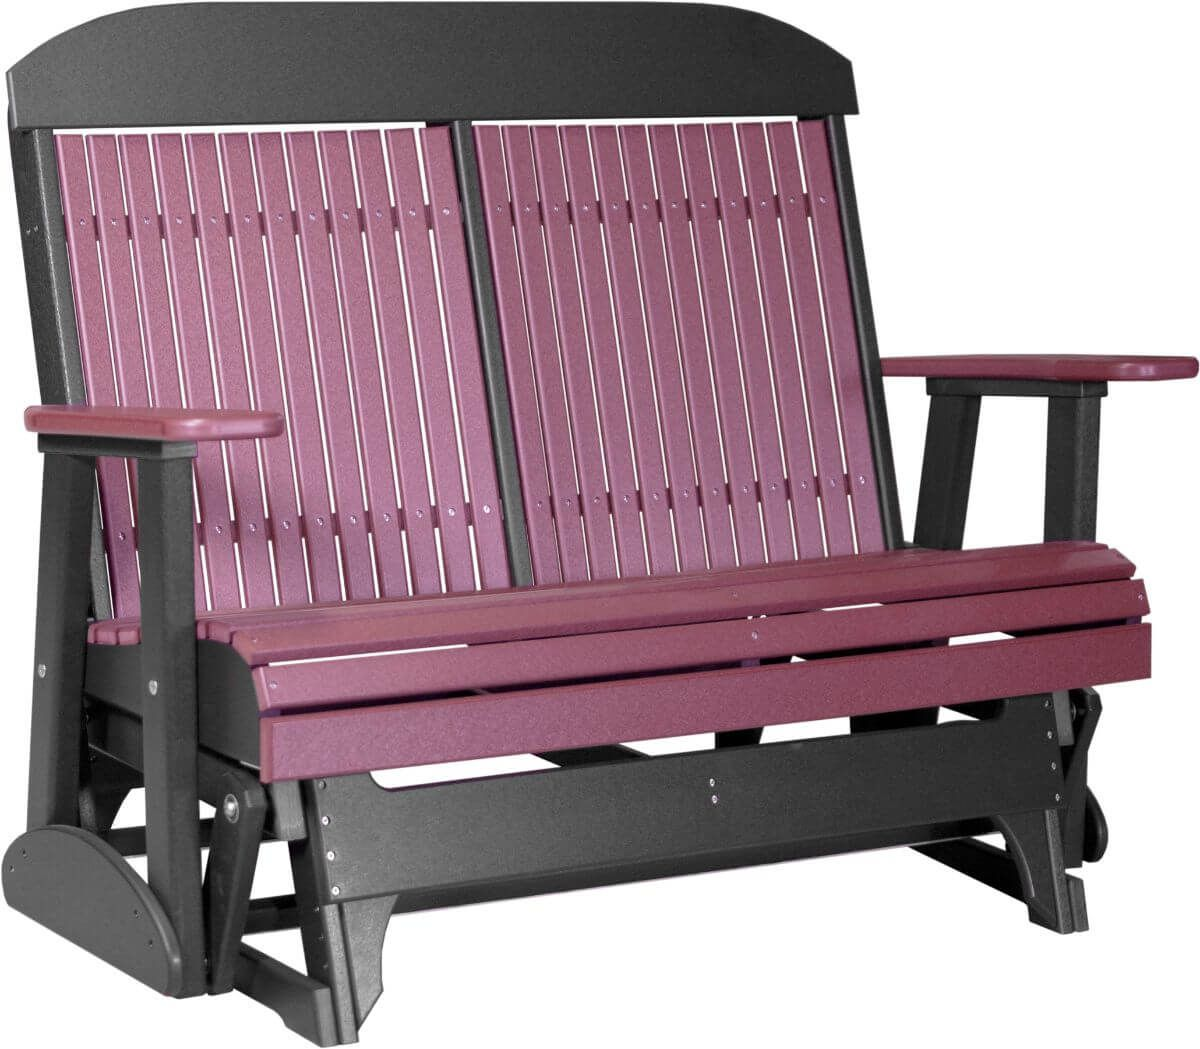 Cherrywood and Black Stockton Outdoor Glider Bench